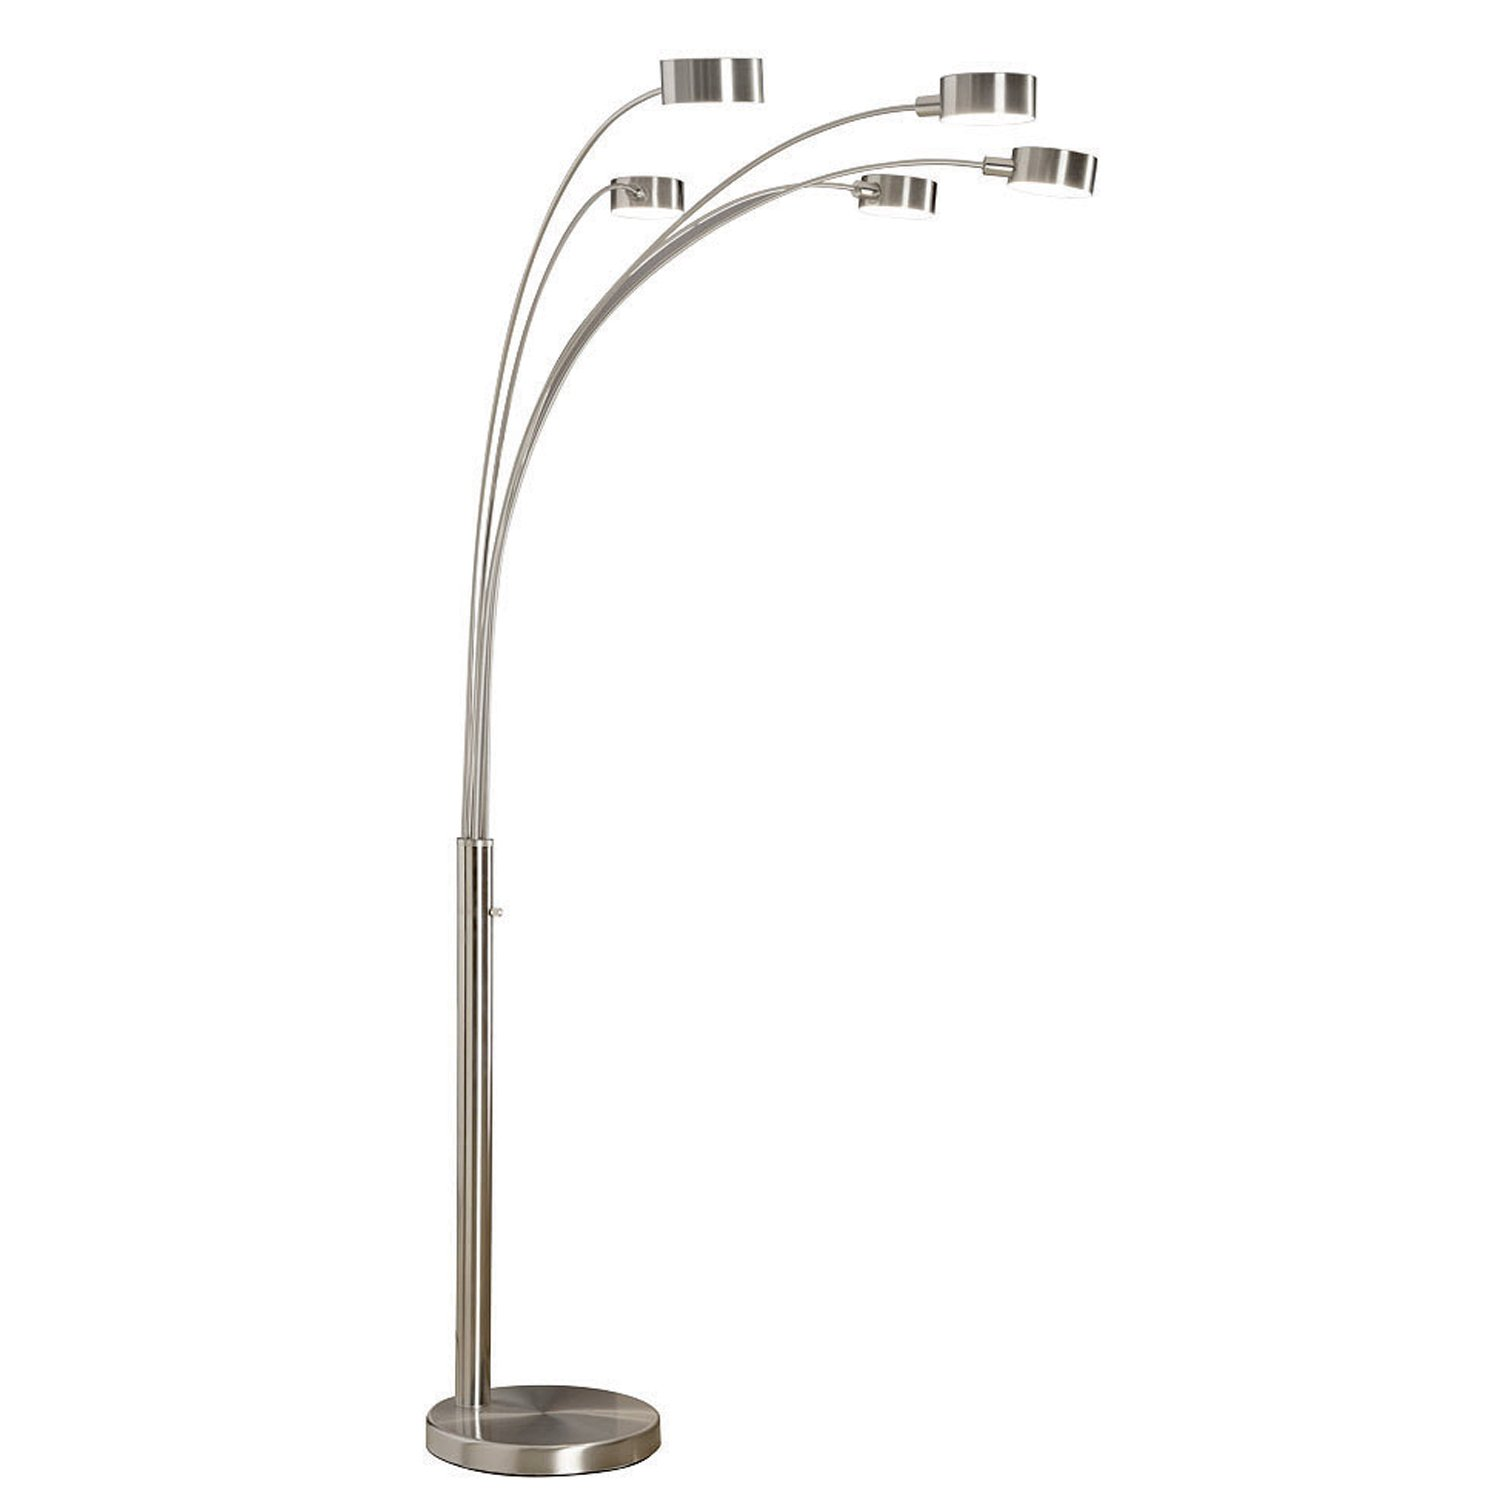 Artiva USA Micah - 5 Arc Brushed Steel Floor Lamp w/ Dimmer Switch, 360 Degree Rotatable Shades - Dim Options - Bright & Attractive - Solid Construction - Stainless Steel - Industrial & Mid-Century by Artiva USA